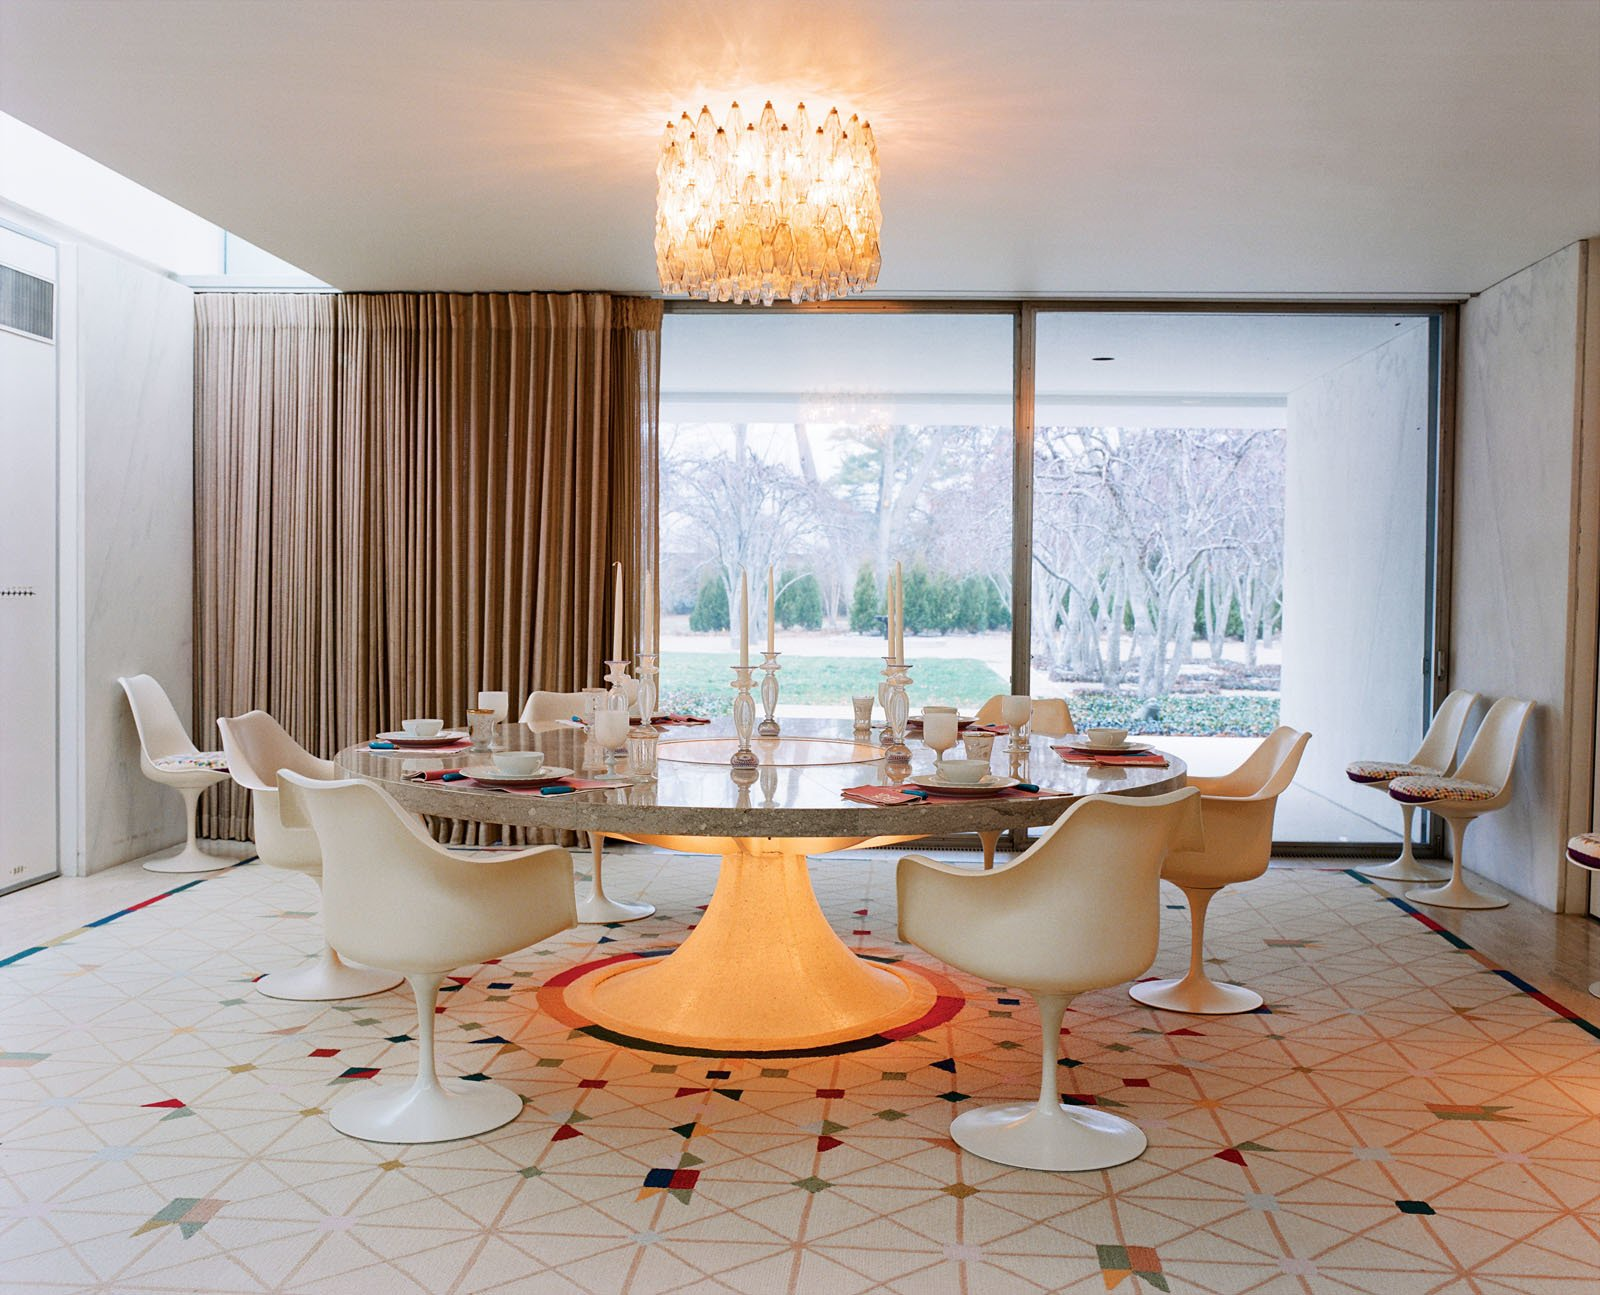 Photo Of In Miller House In Columbus Indiana By Eero Saarinen - Custom tulip table